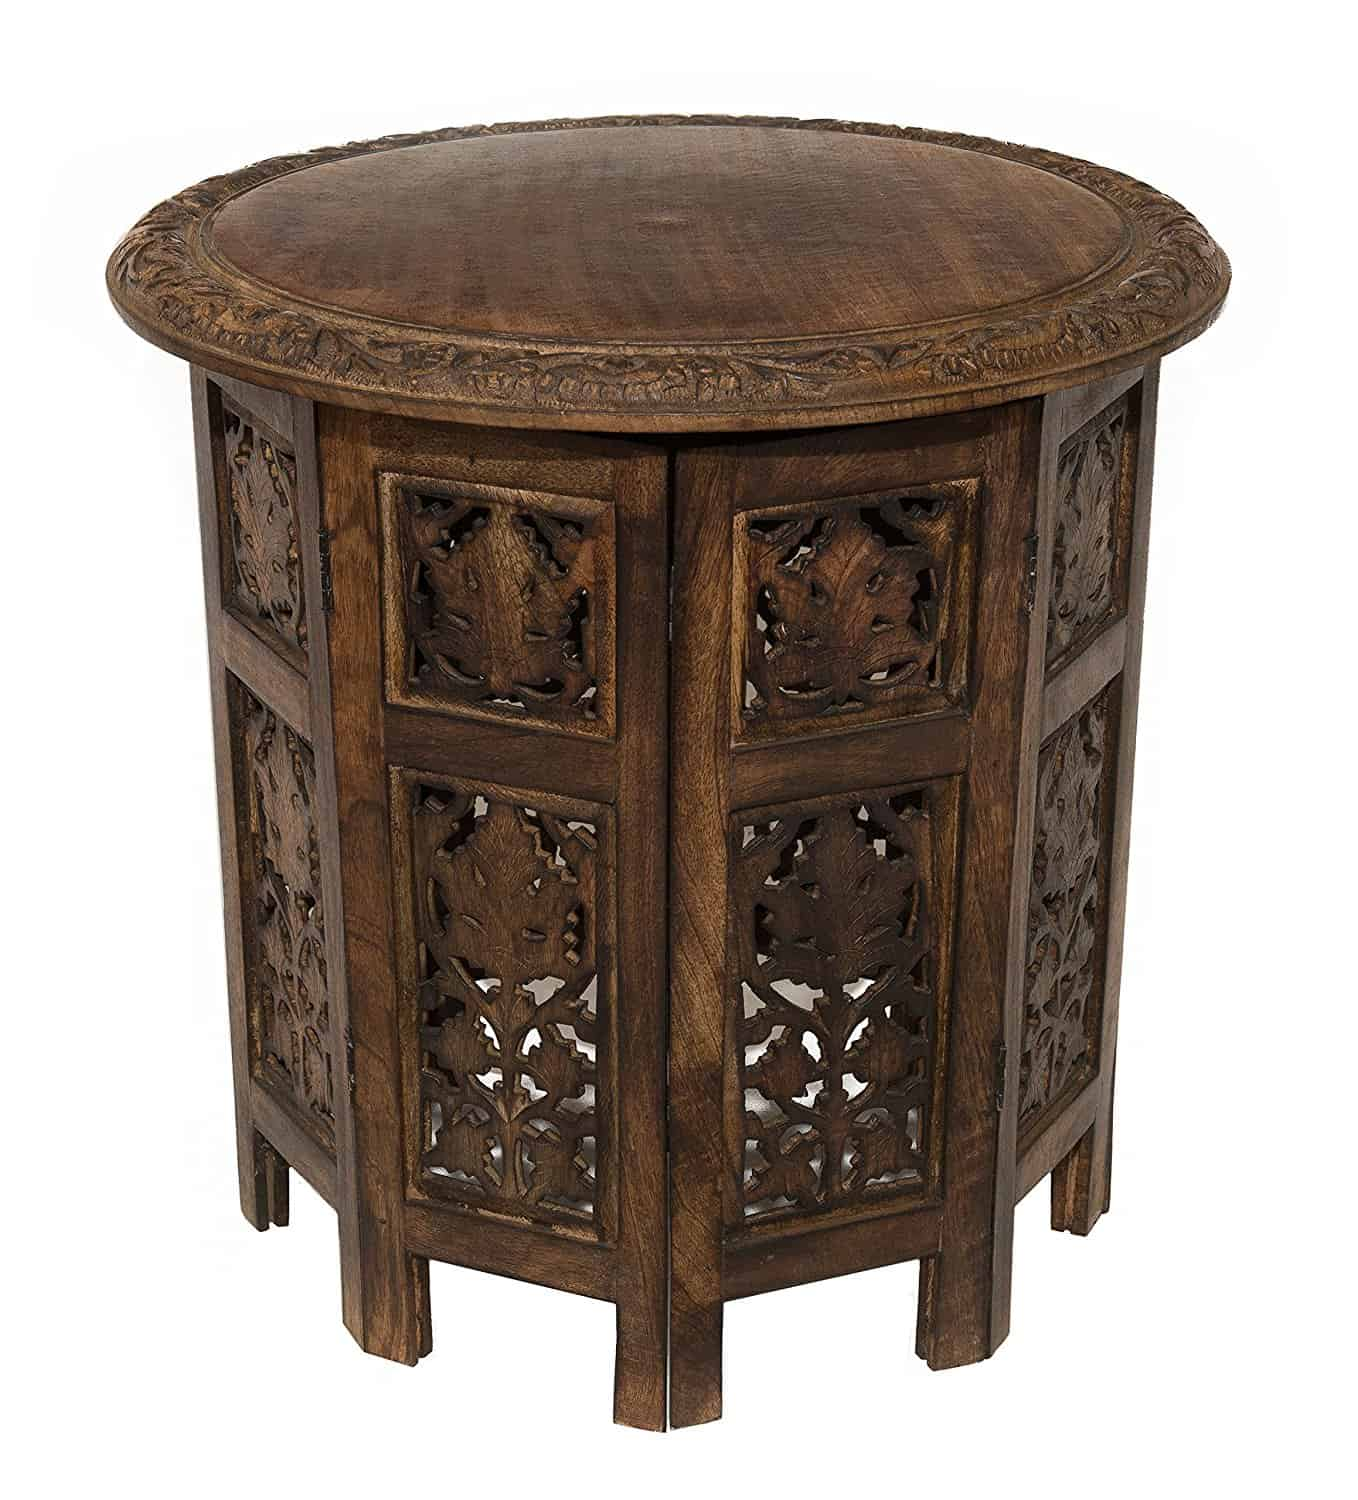 Small Ornate Wooden Round Accent Table.